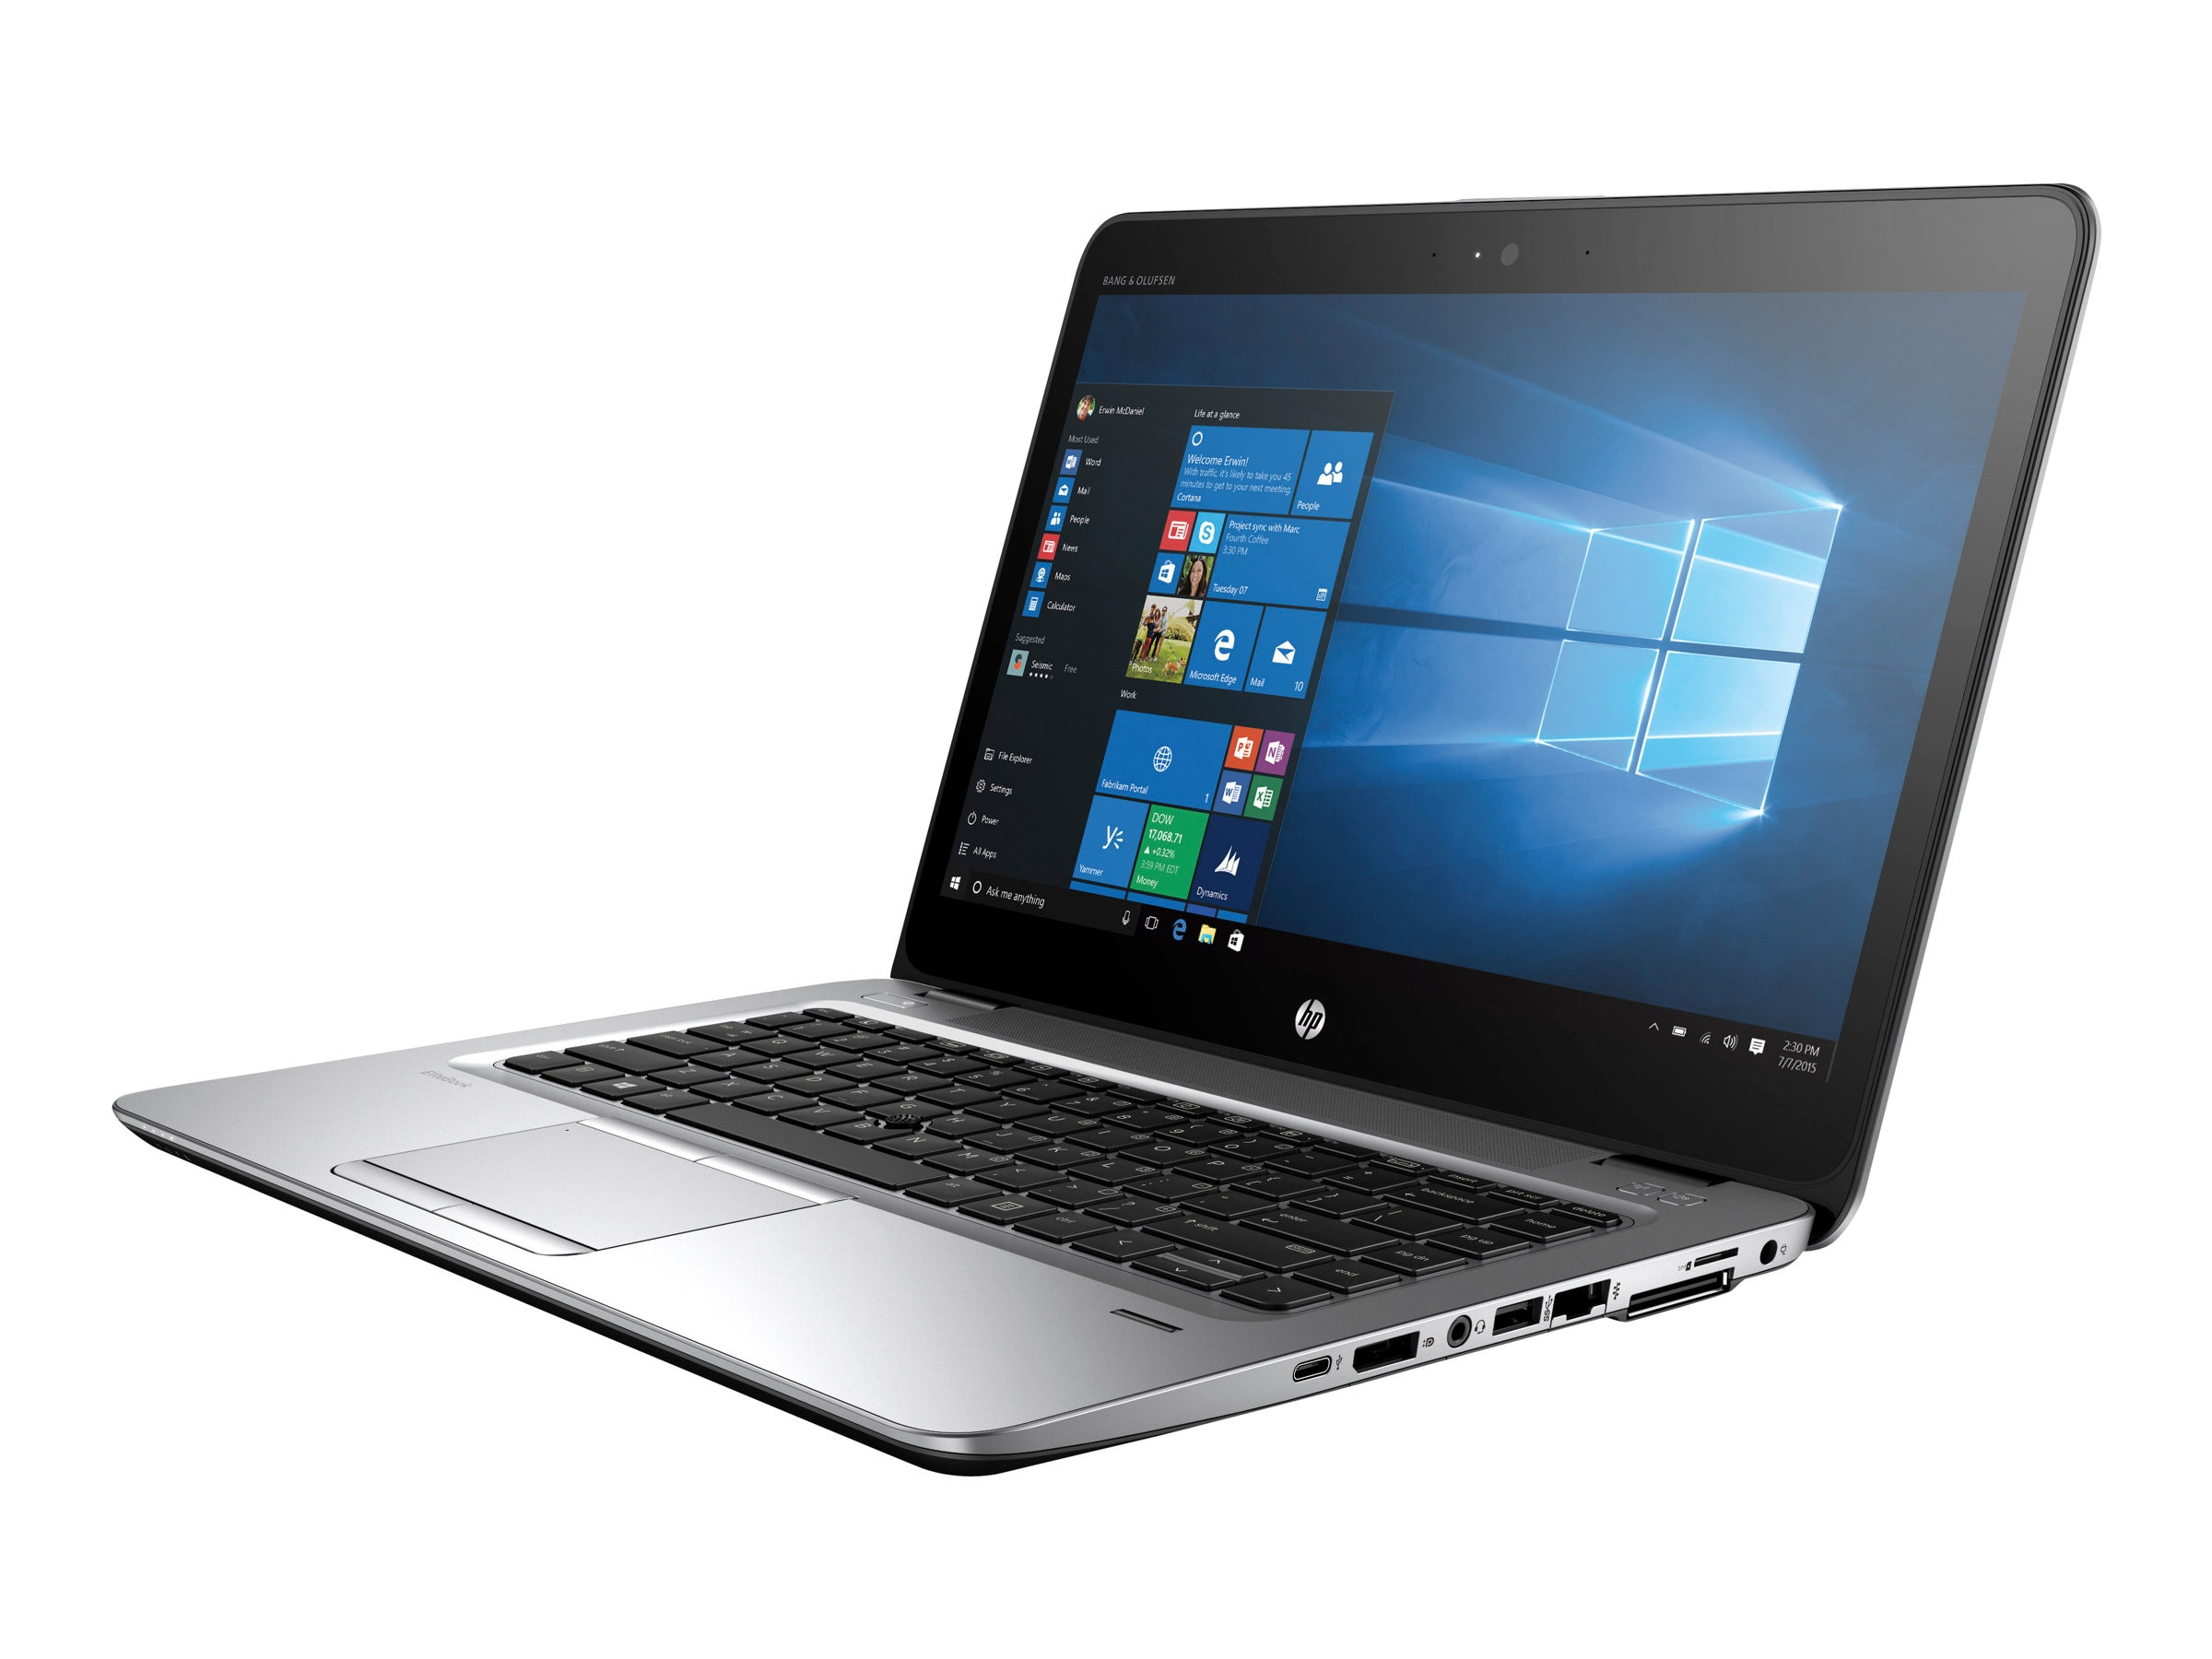 HP EliteBook 840 G3 2.4GHz Core i5 14in display